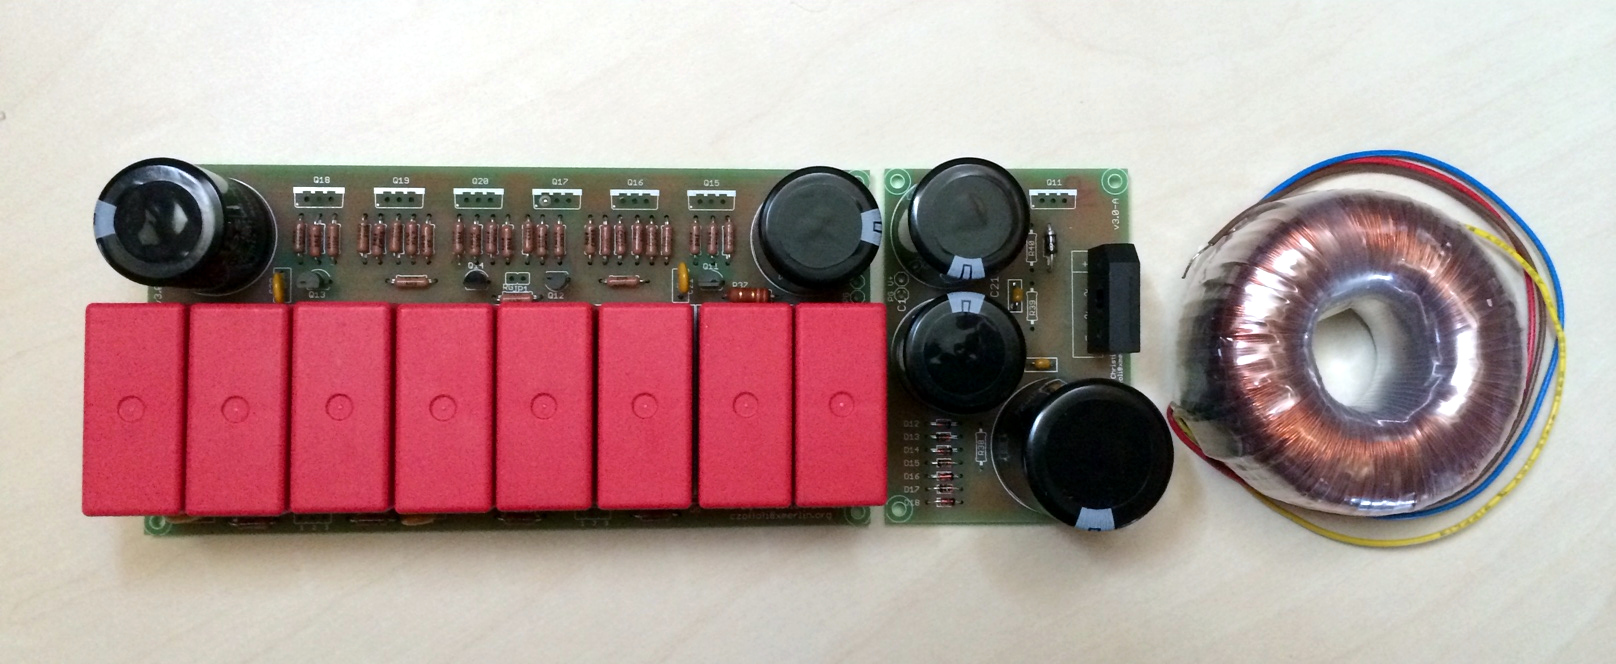 Pass Labs Diy Projects Alephx 100w Amplifier Construction Notes Click The Image To Open In Full Size